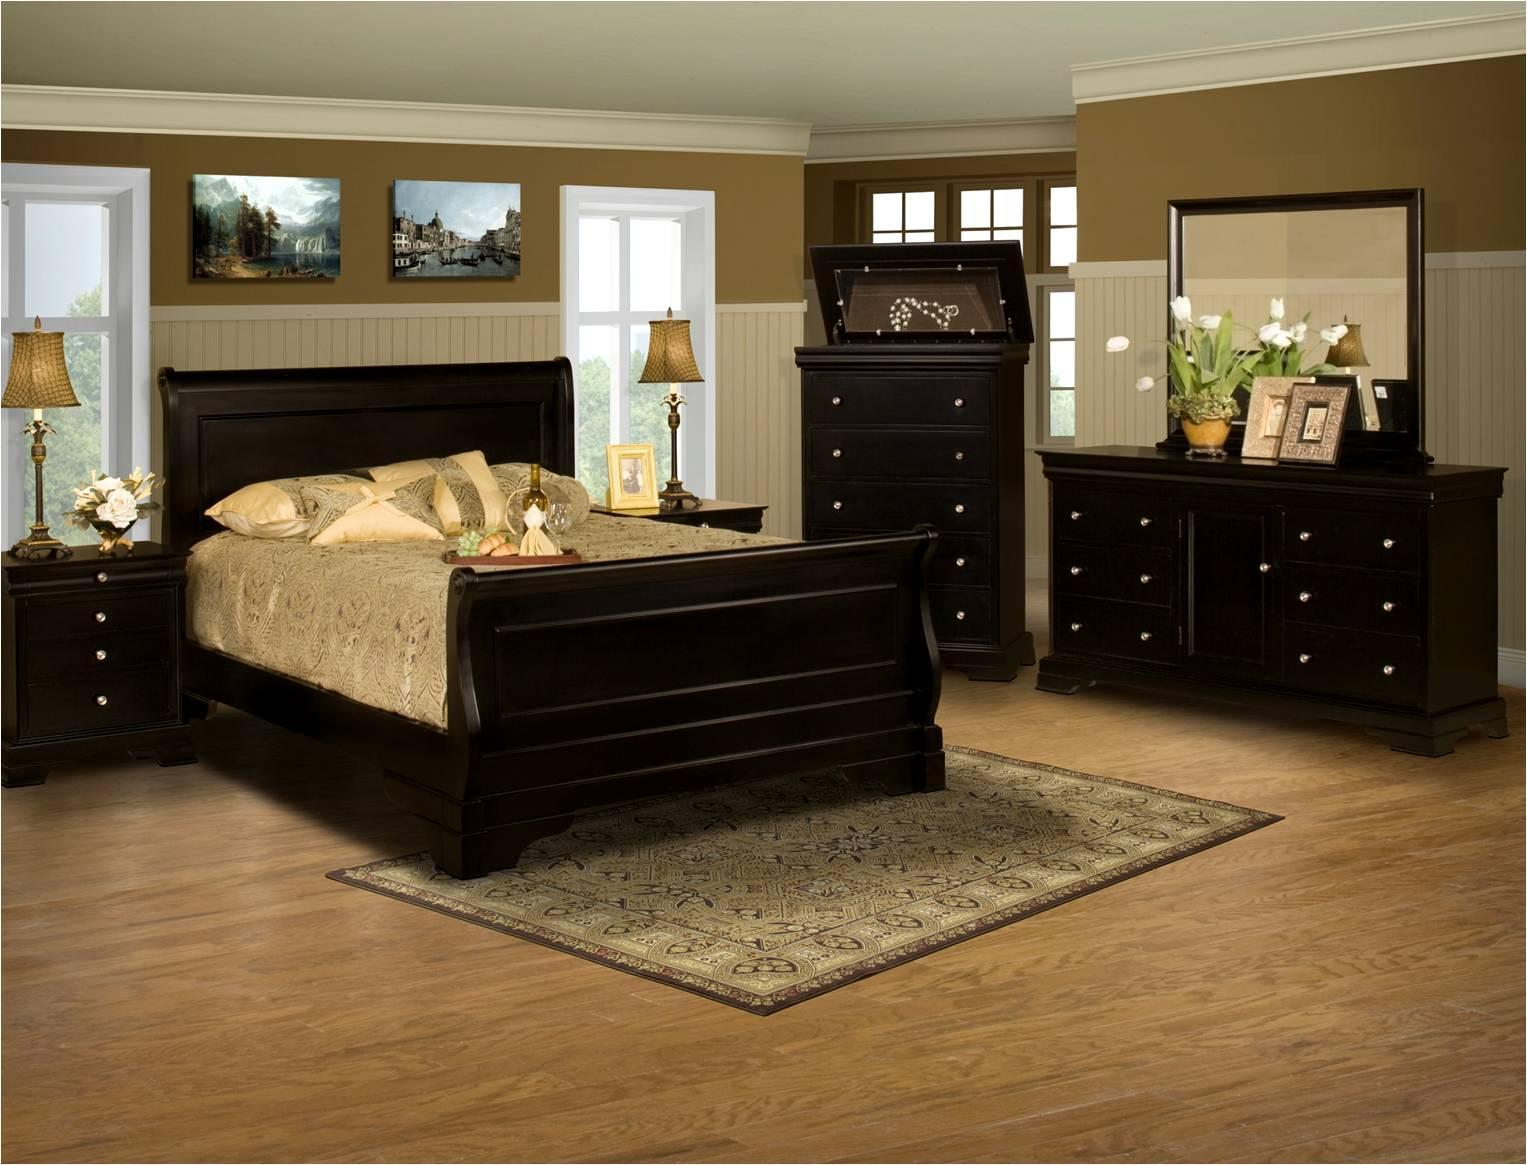 Belle Rose 4 Piece Bedroom Group by New Classic at Darvin Furniture